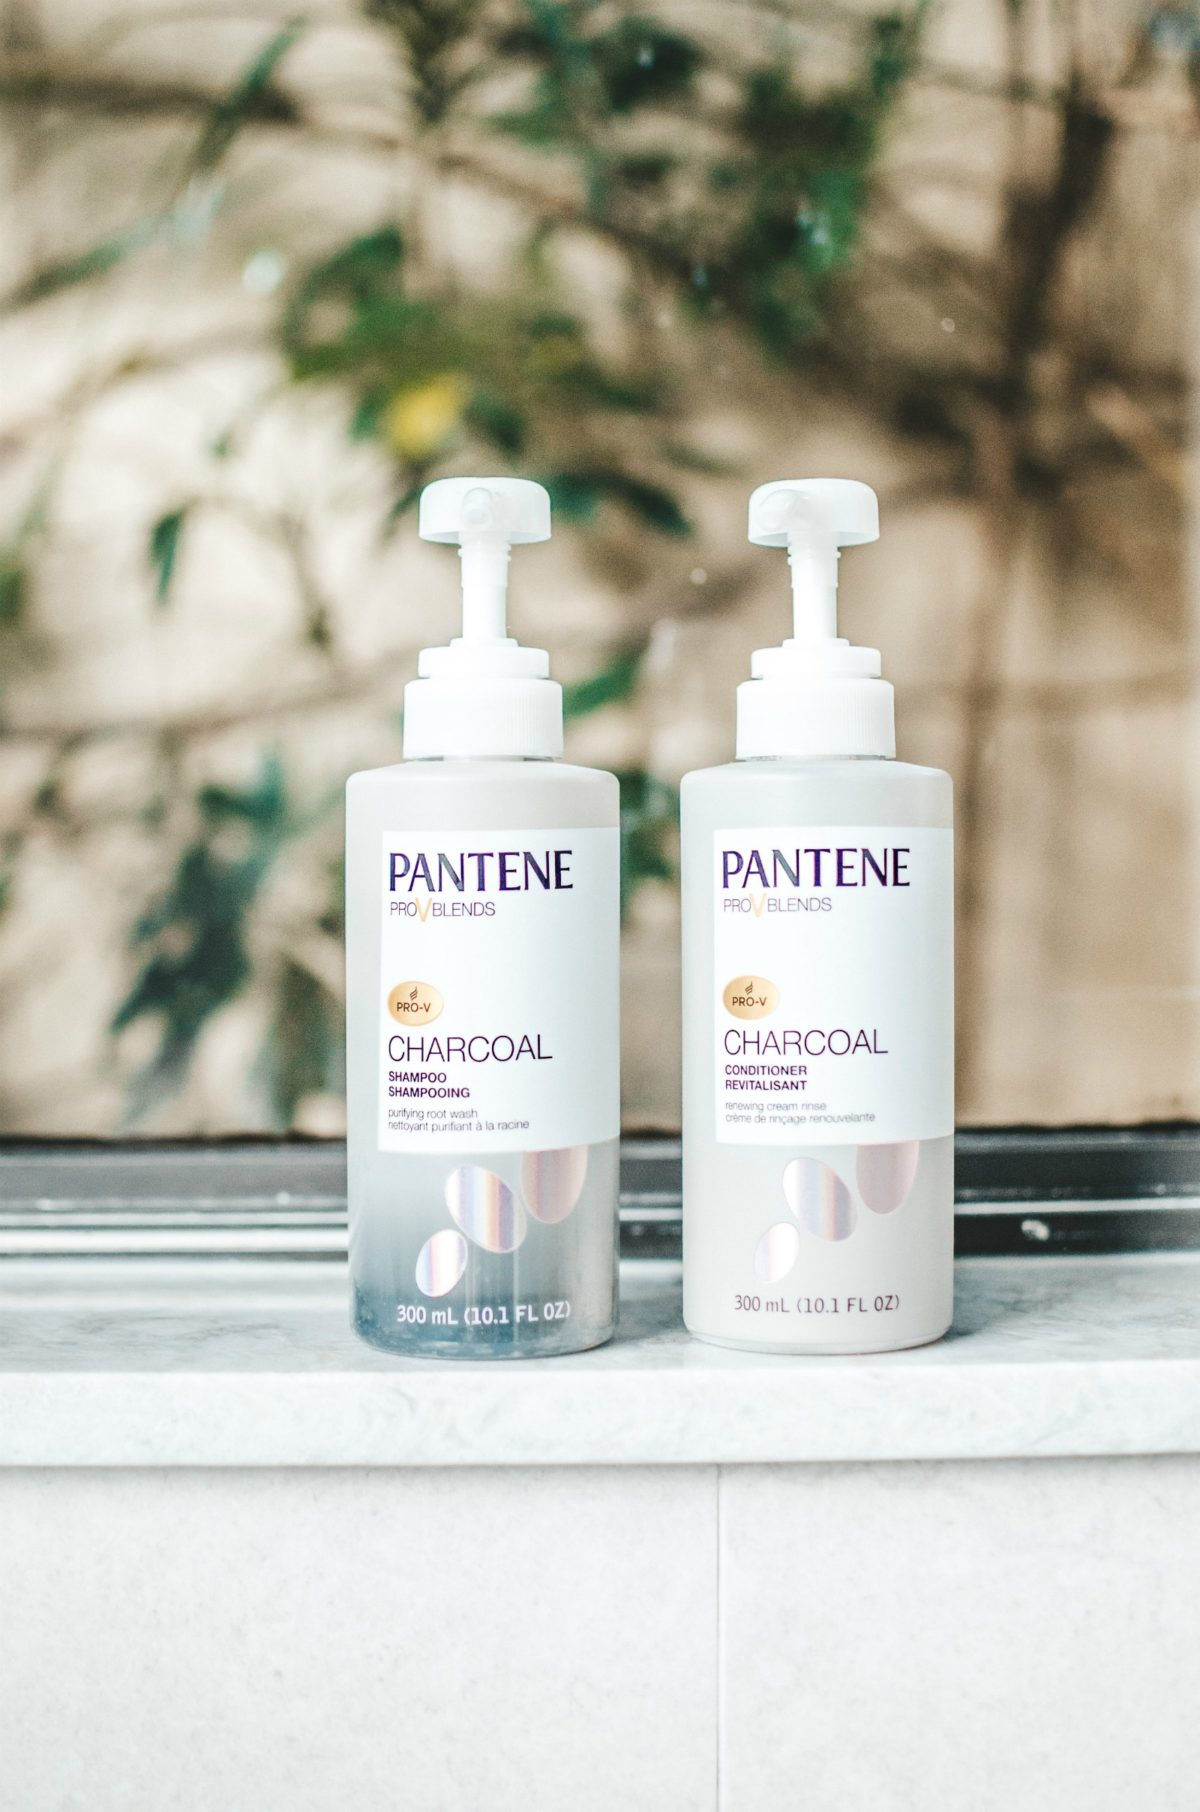 charcoal shampoo and conditioner, activated charcoal shampoo, Pantene Charcoal